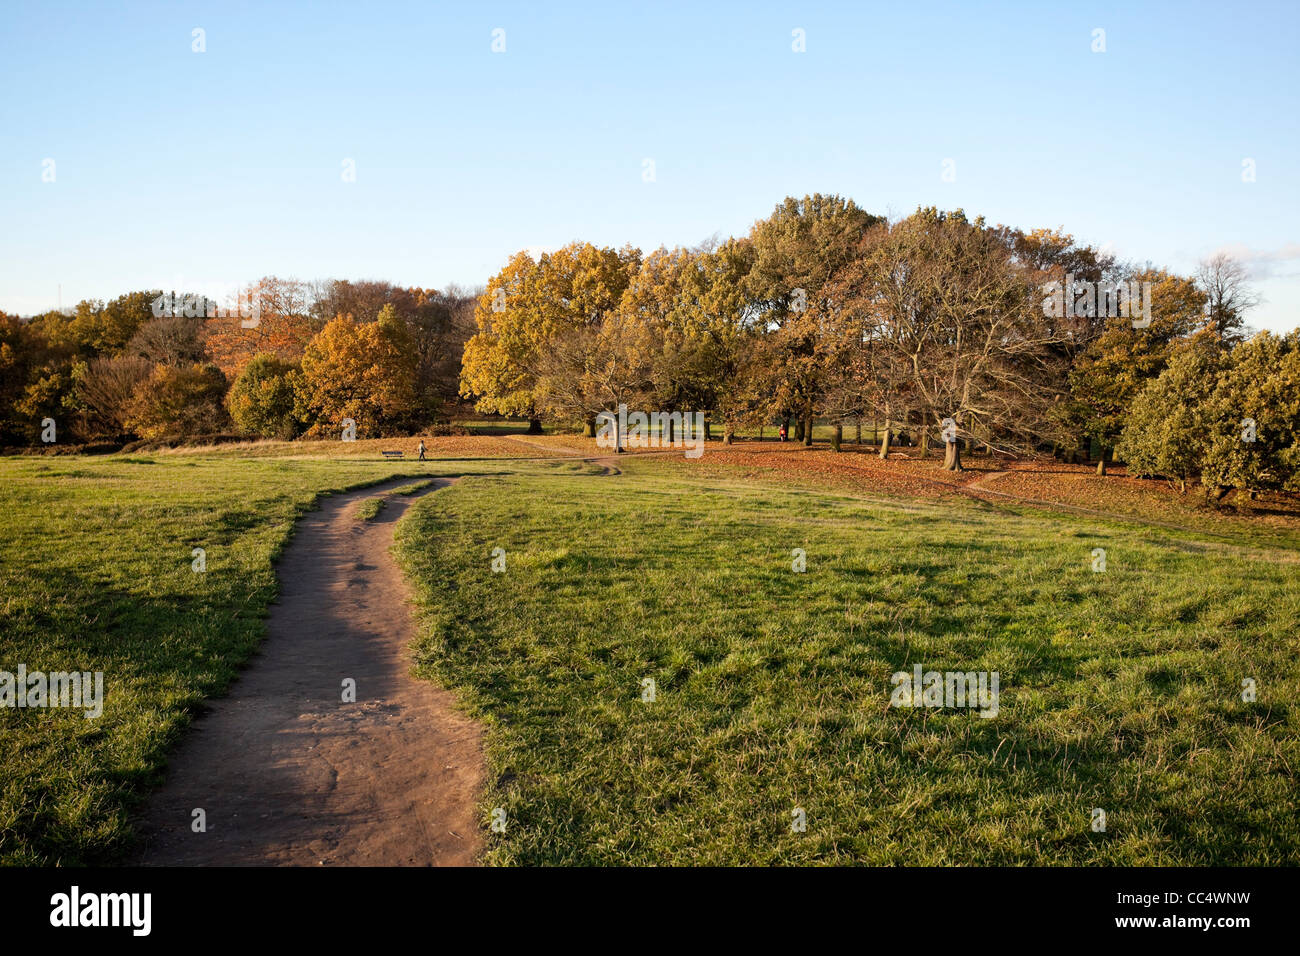 View from the opposite side of Parliament Hill, Hampstead heath, London, England, UK. - Stock Image